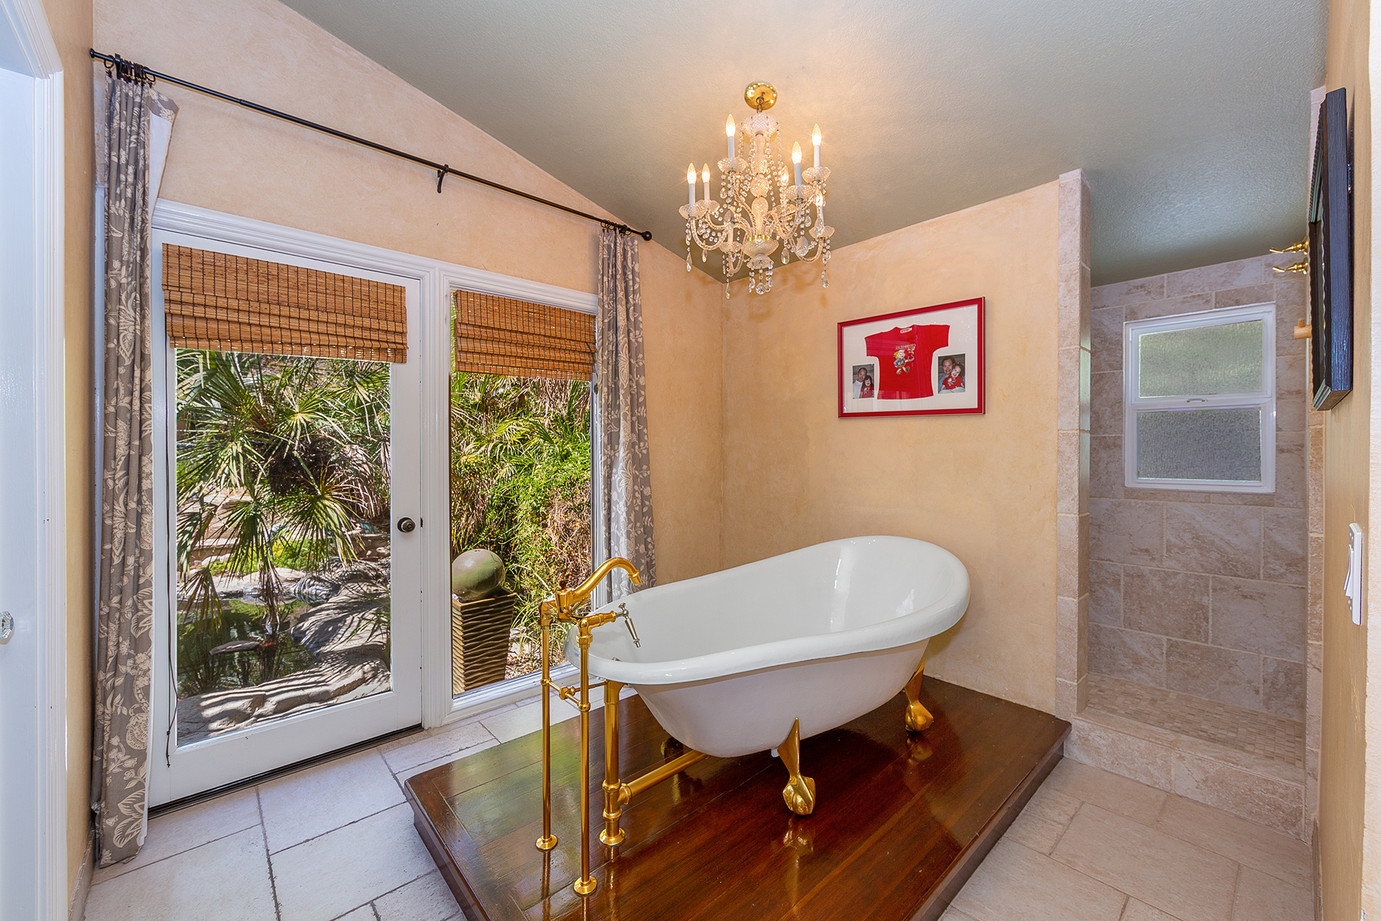 Spa-like Tub & Shower Looking Out to Koi Pond